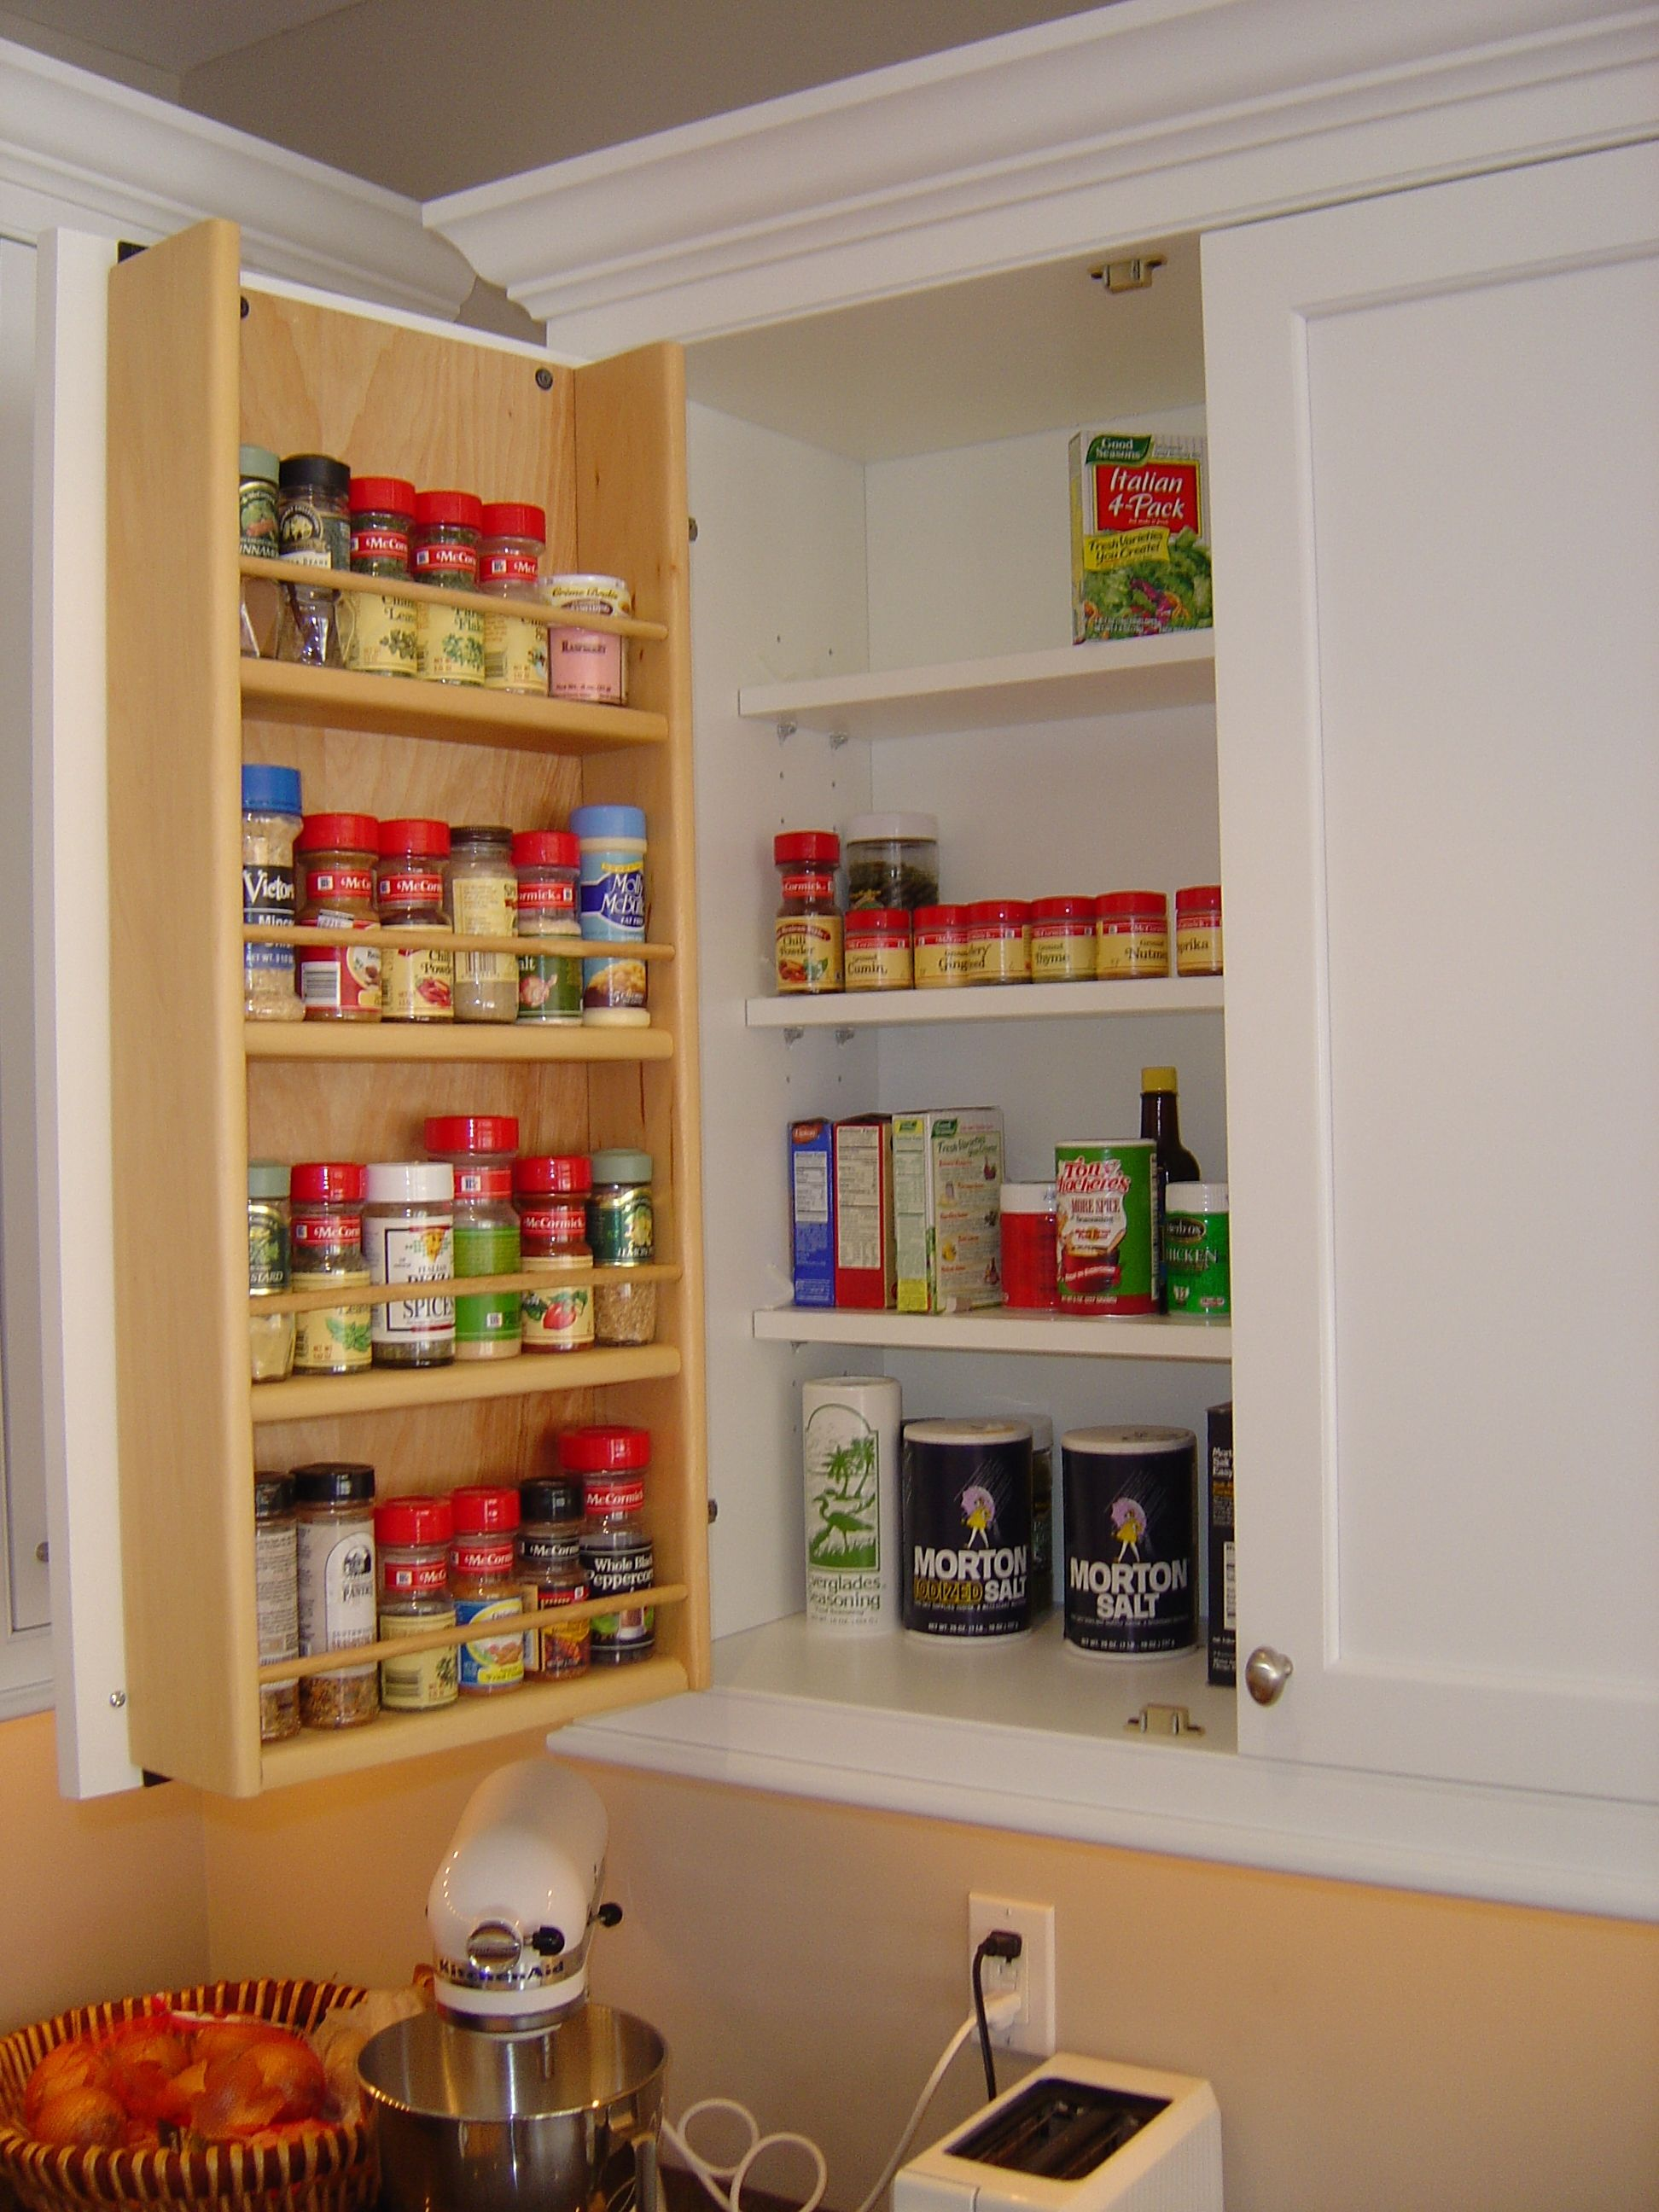 Tedd Wood Spice Storage On Inside Of Cabinet Door Storage Organization Pinterest Storage